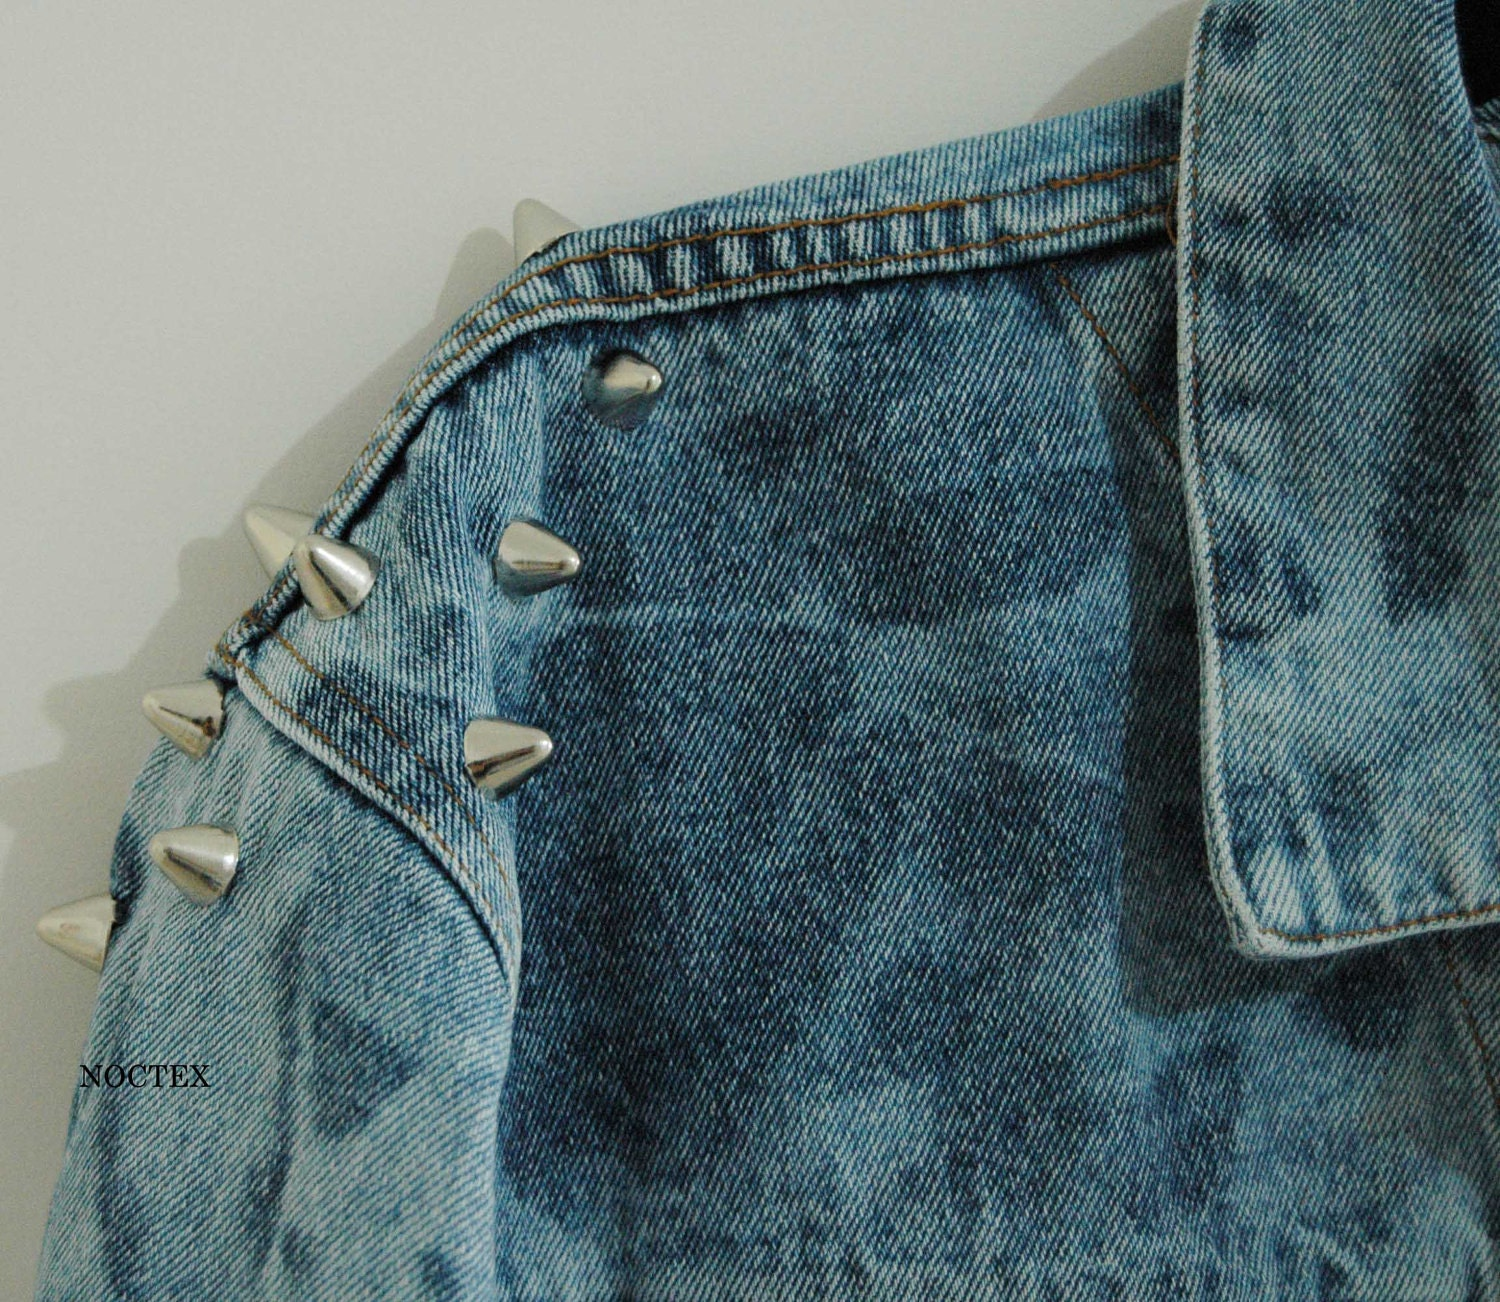 SALE: Reworked 90s Punk Grunge Acid Washed America by ...